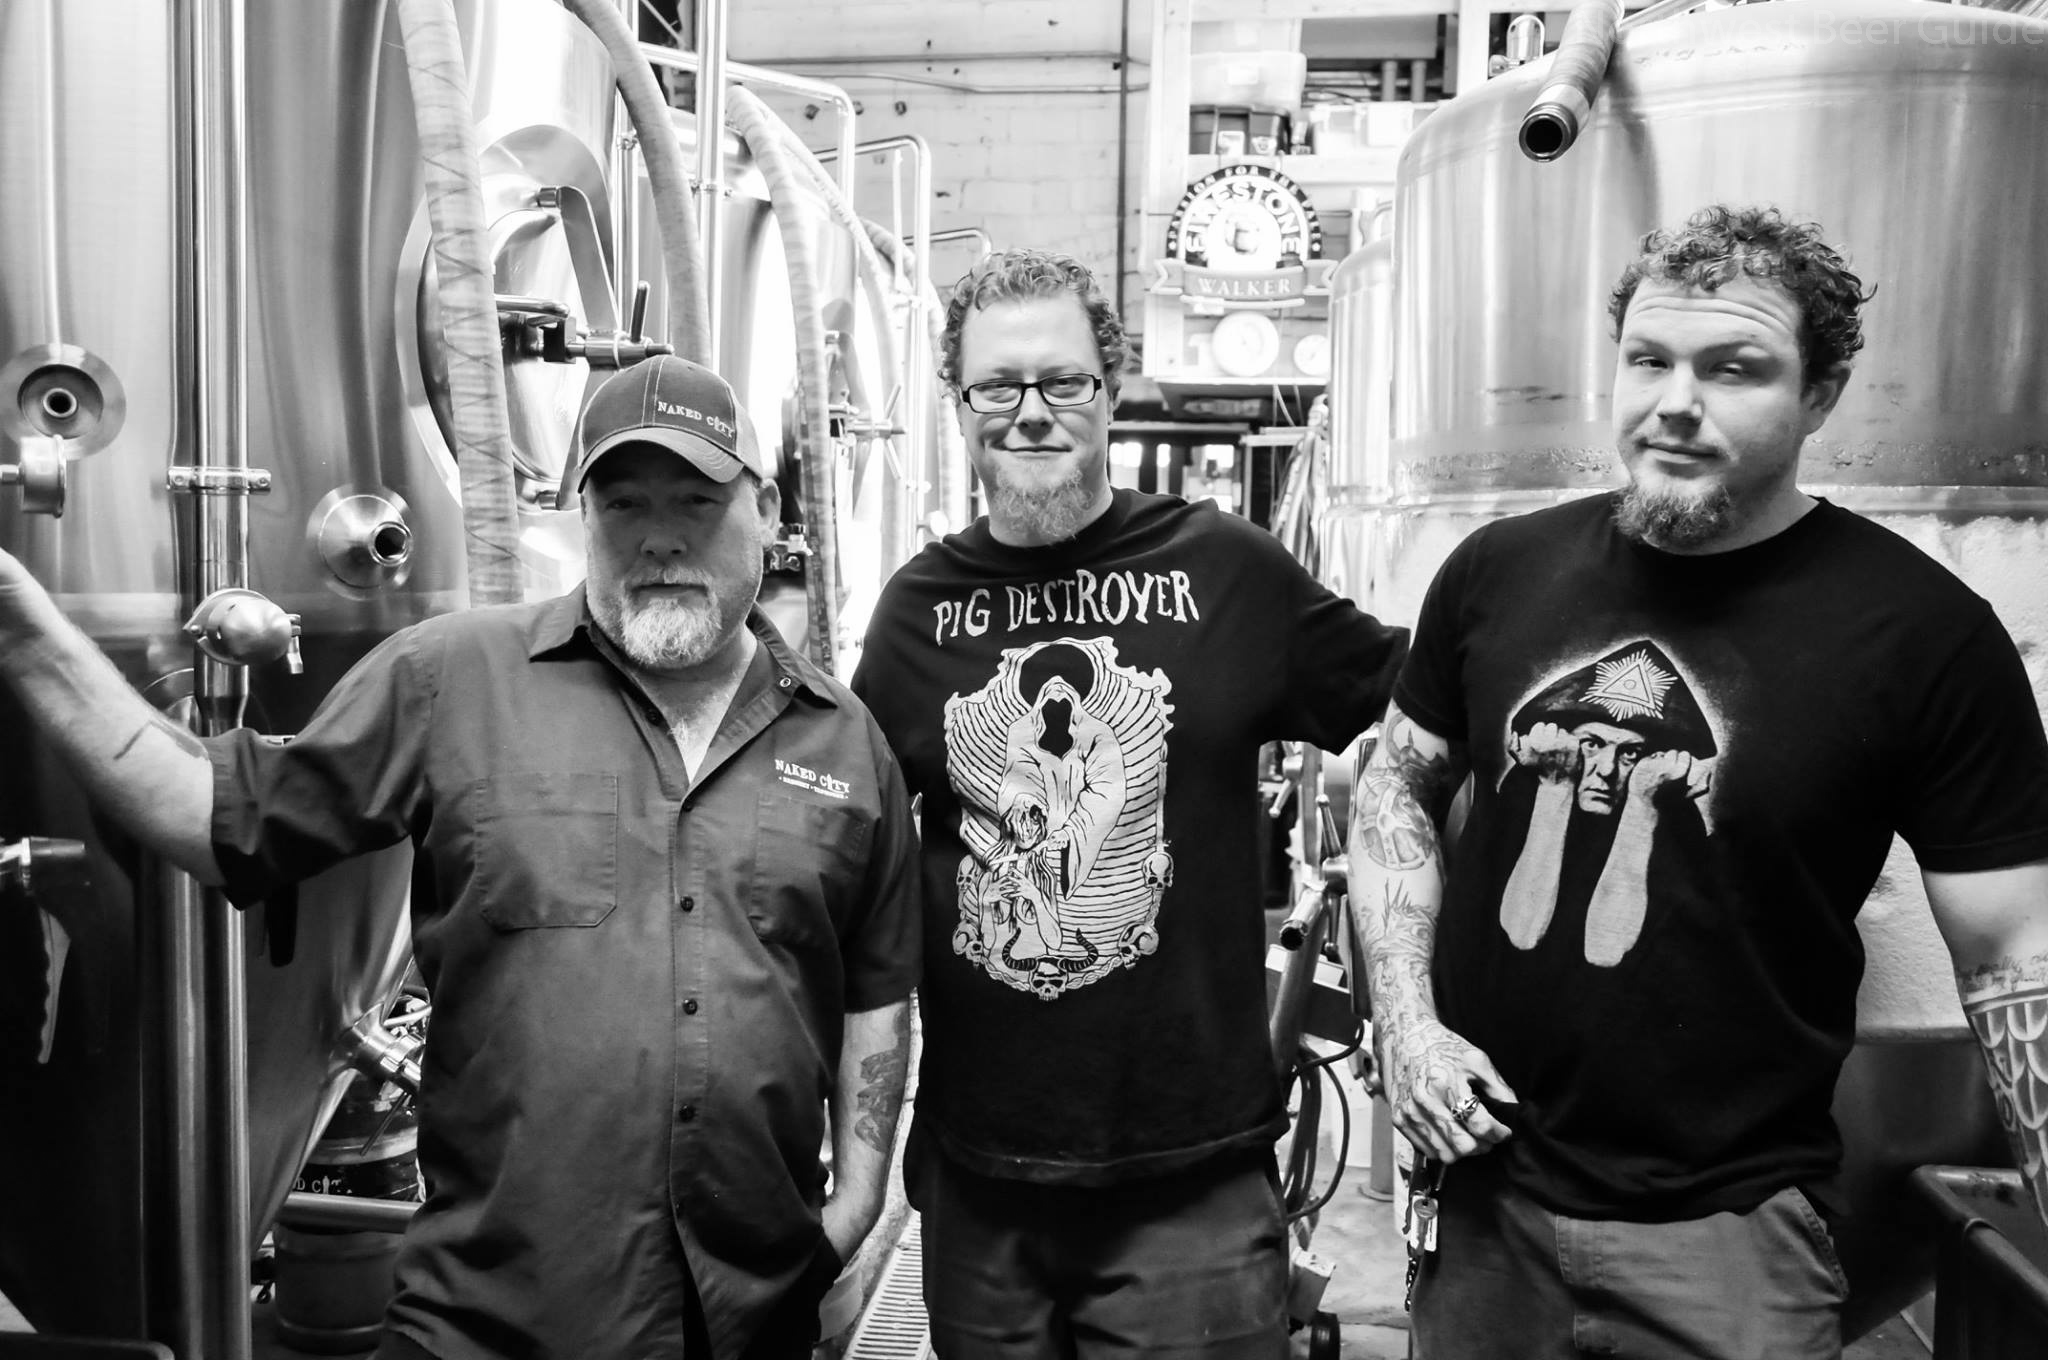 Pictured Don Web co-owner of Naked City Brewery & Taphouse, Matt Bonney co-owner of Toronado, Kenneth Sorenson from Standard Brewing Company/Copyright Northwrest Beer Guide